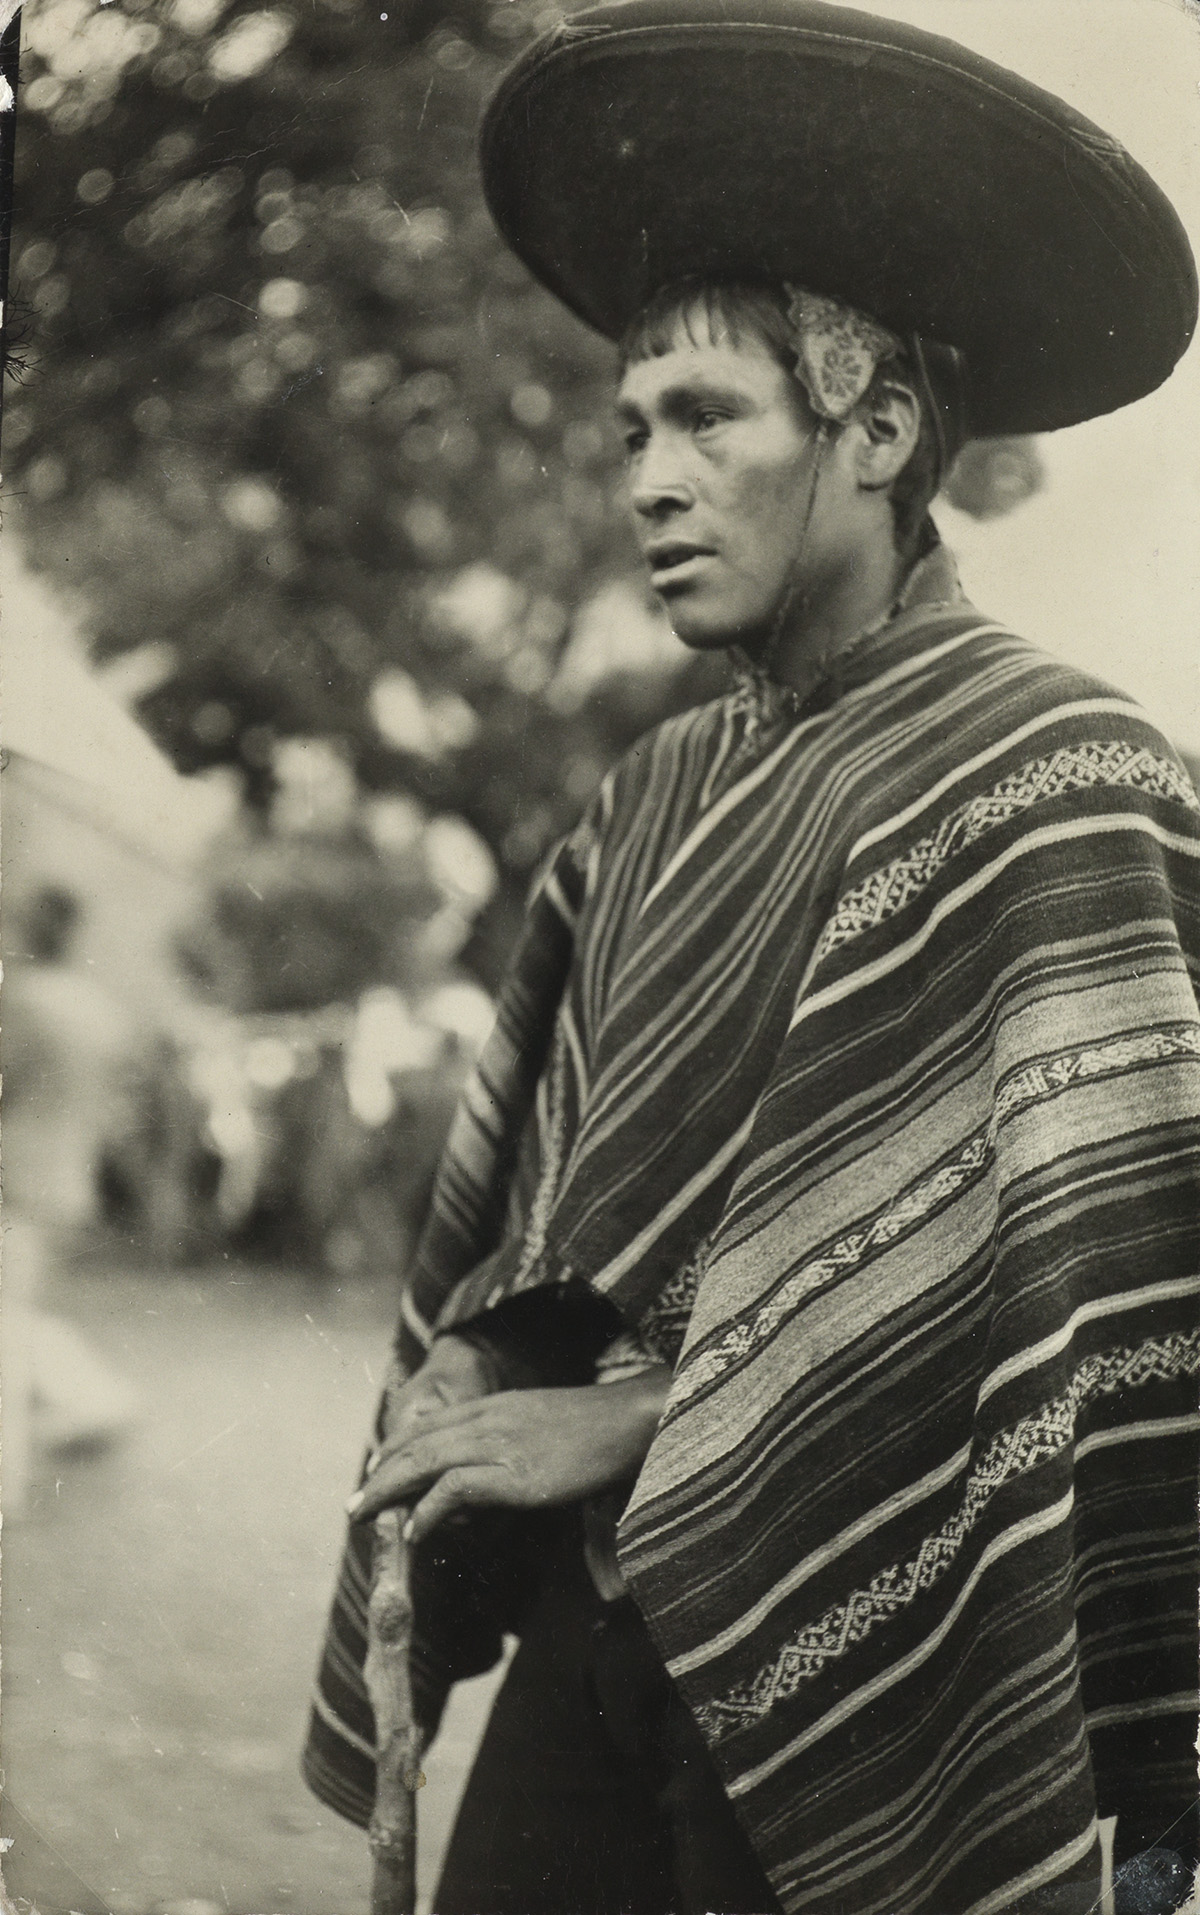 MARTIN CHAMBI (1891-1973) A group of 8 photographs of indigenous figures in Peru.